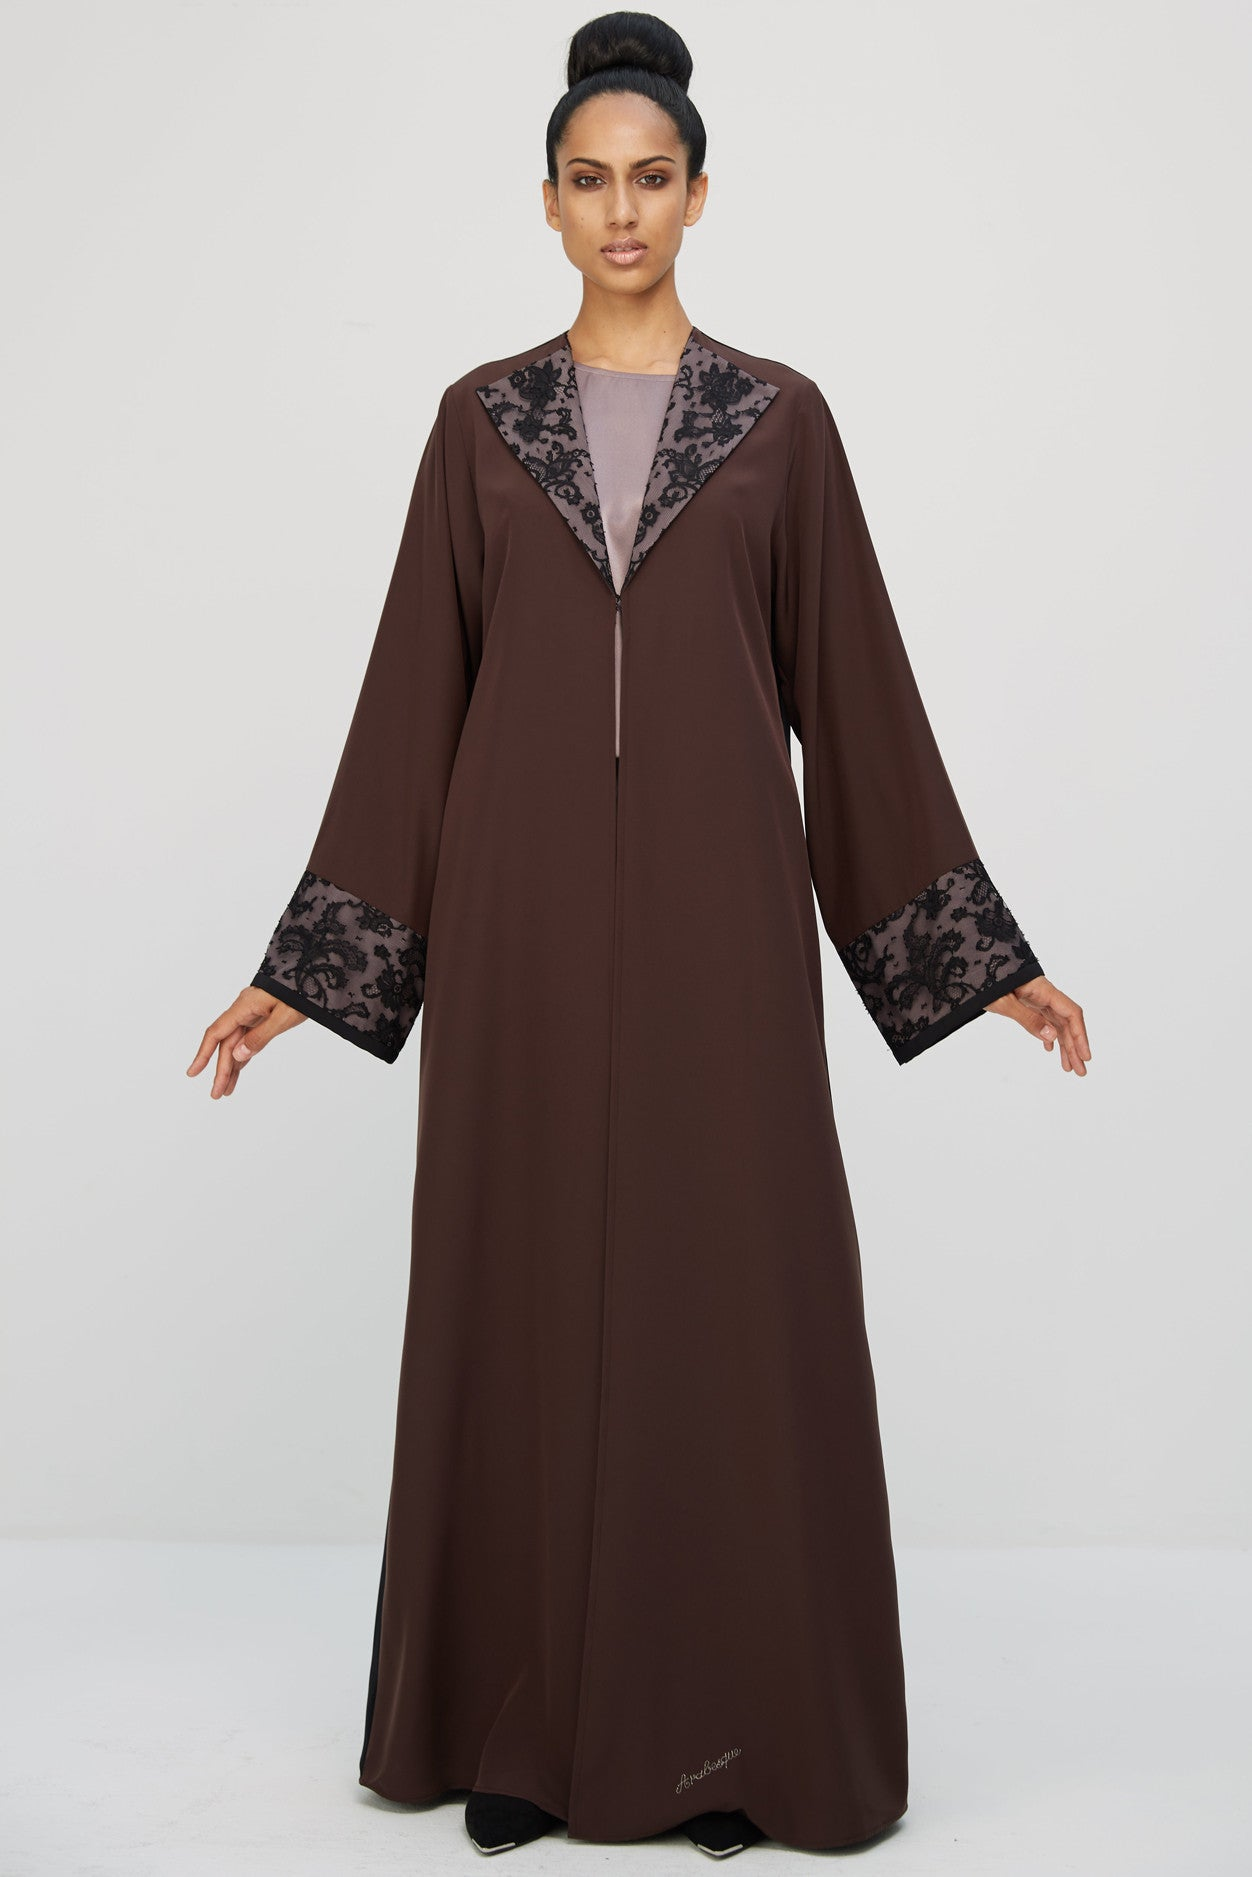 VALLERIE - AMM1893Z - Arabesque classic cut abaya with lace details on fancy collar and cuffs.